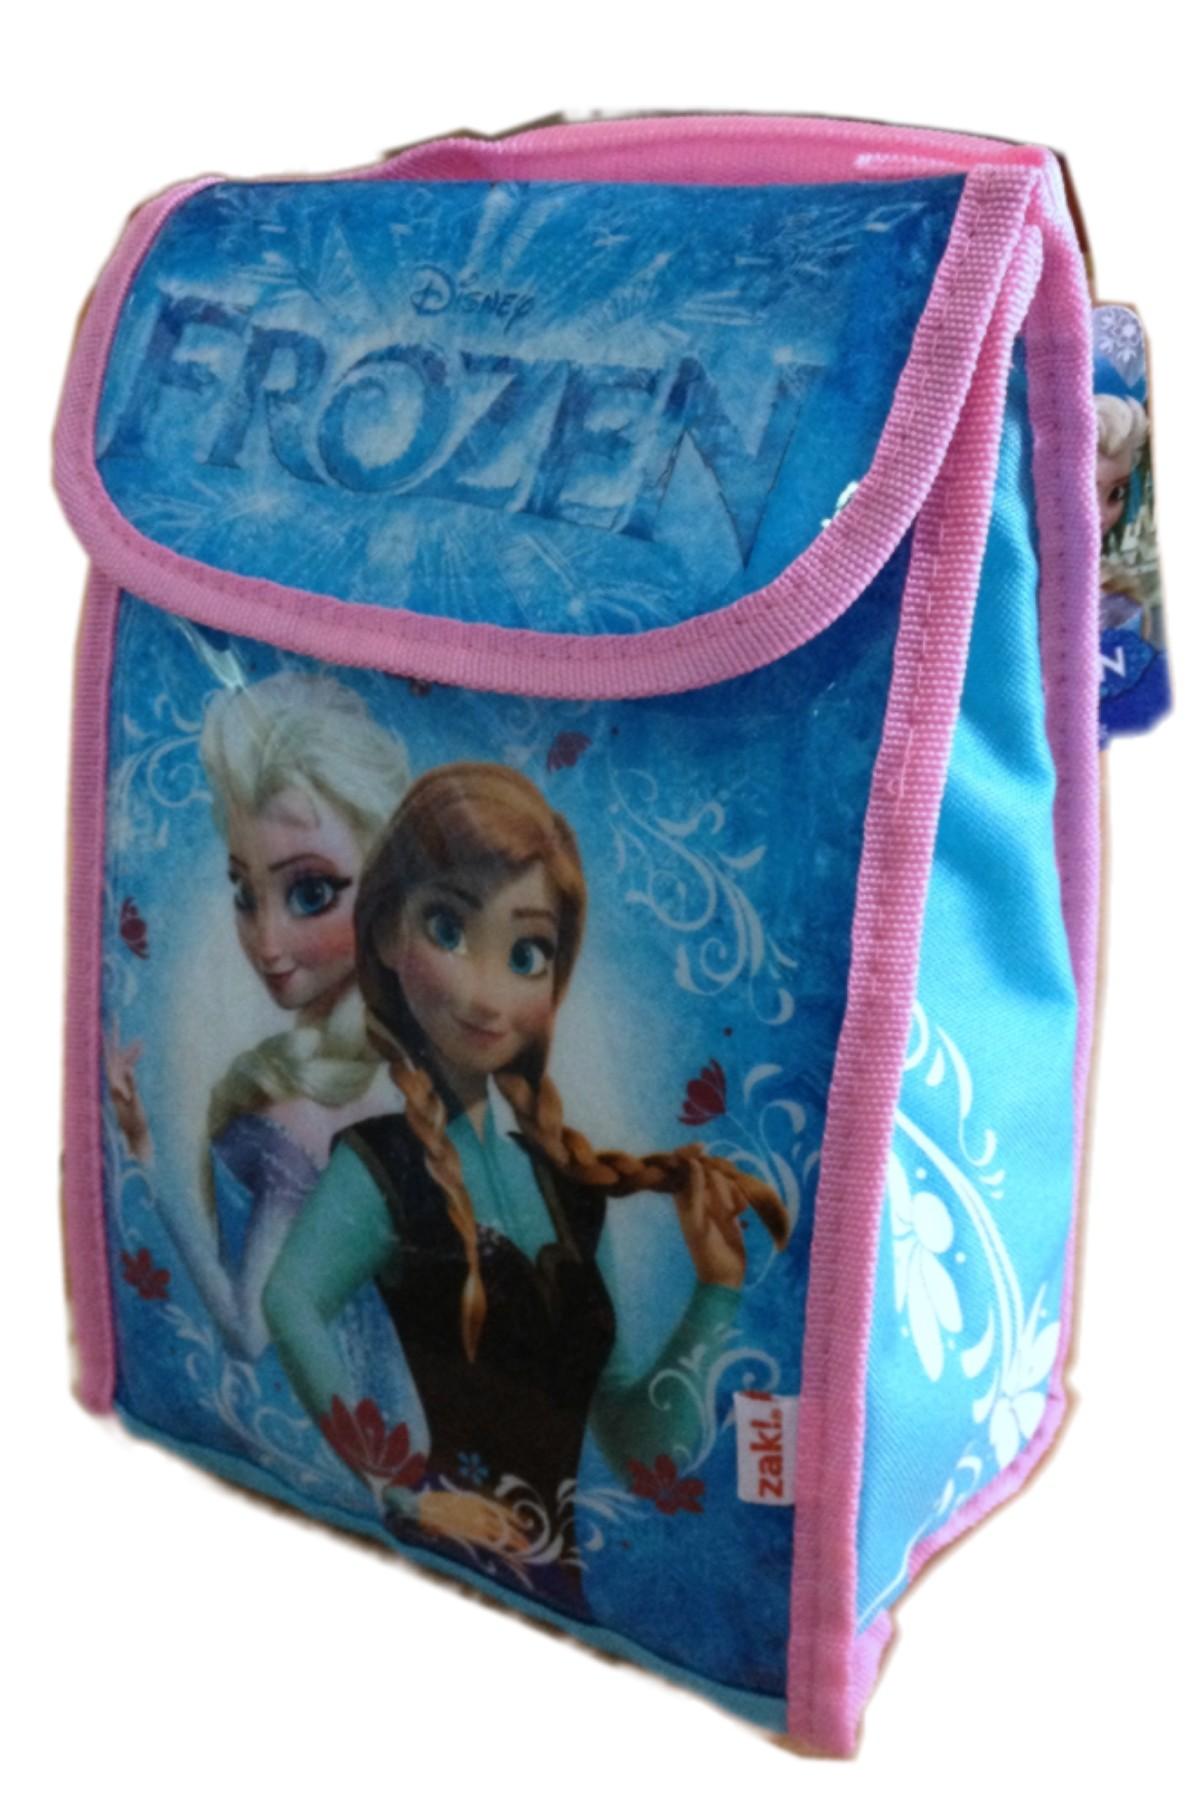 Disney Frozen Elsa & Anna Insulated Lunch Bag